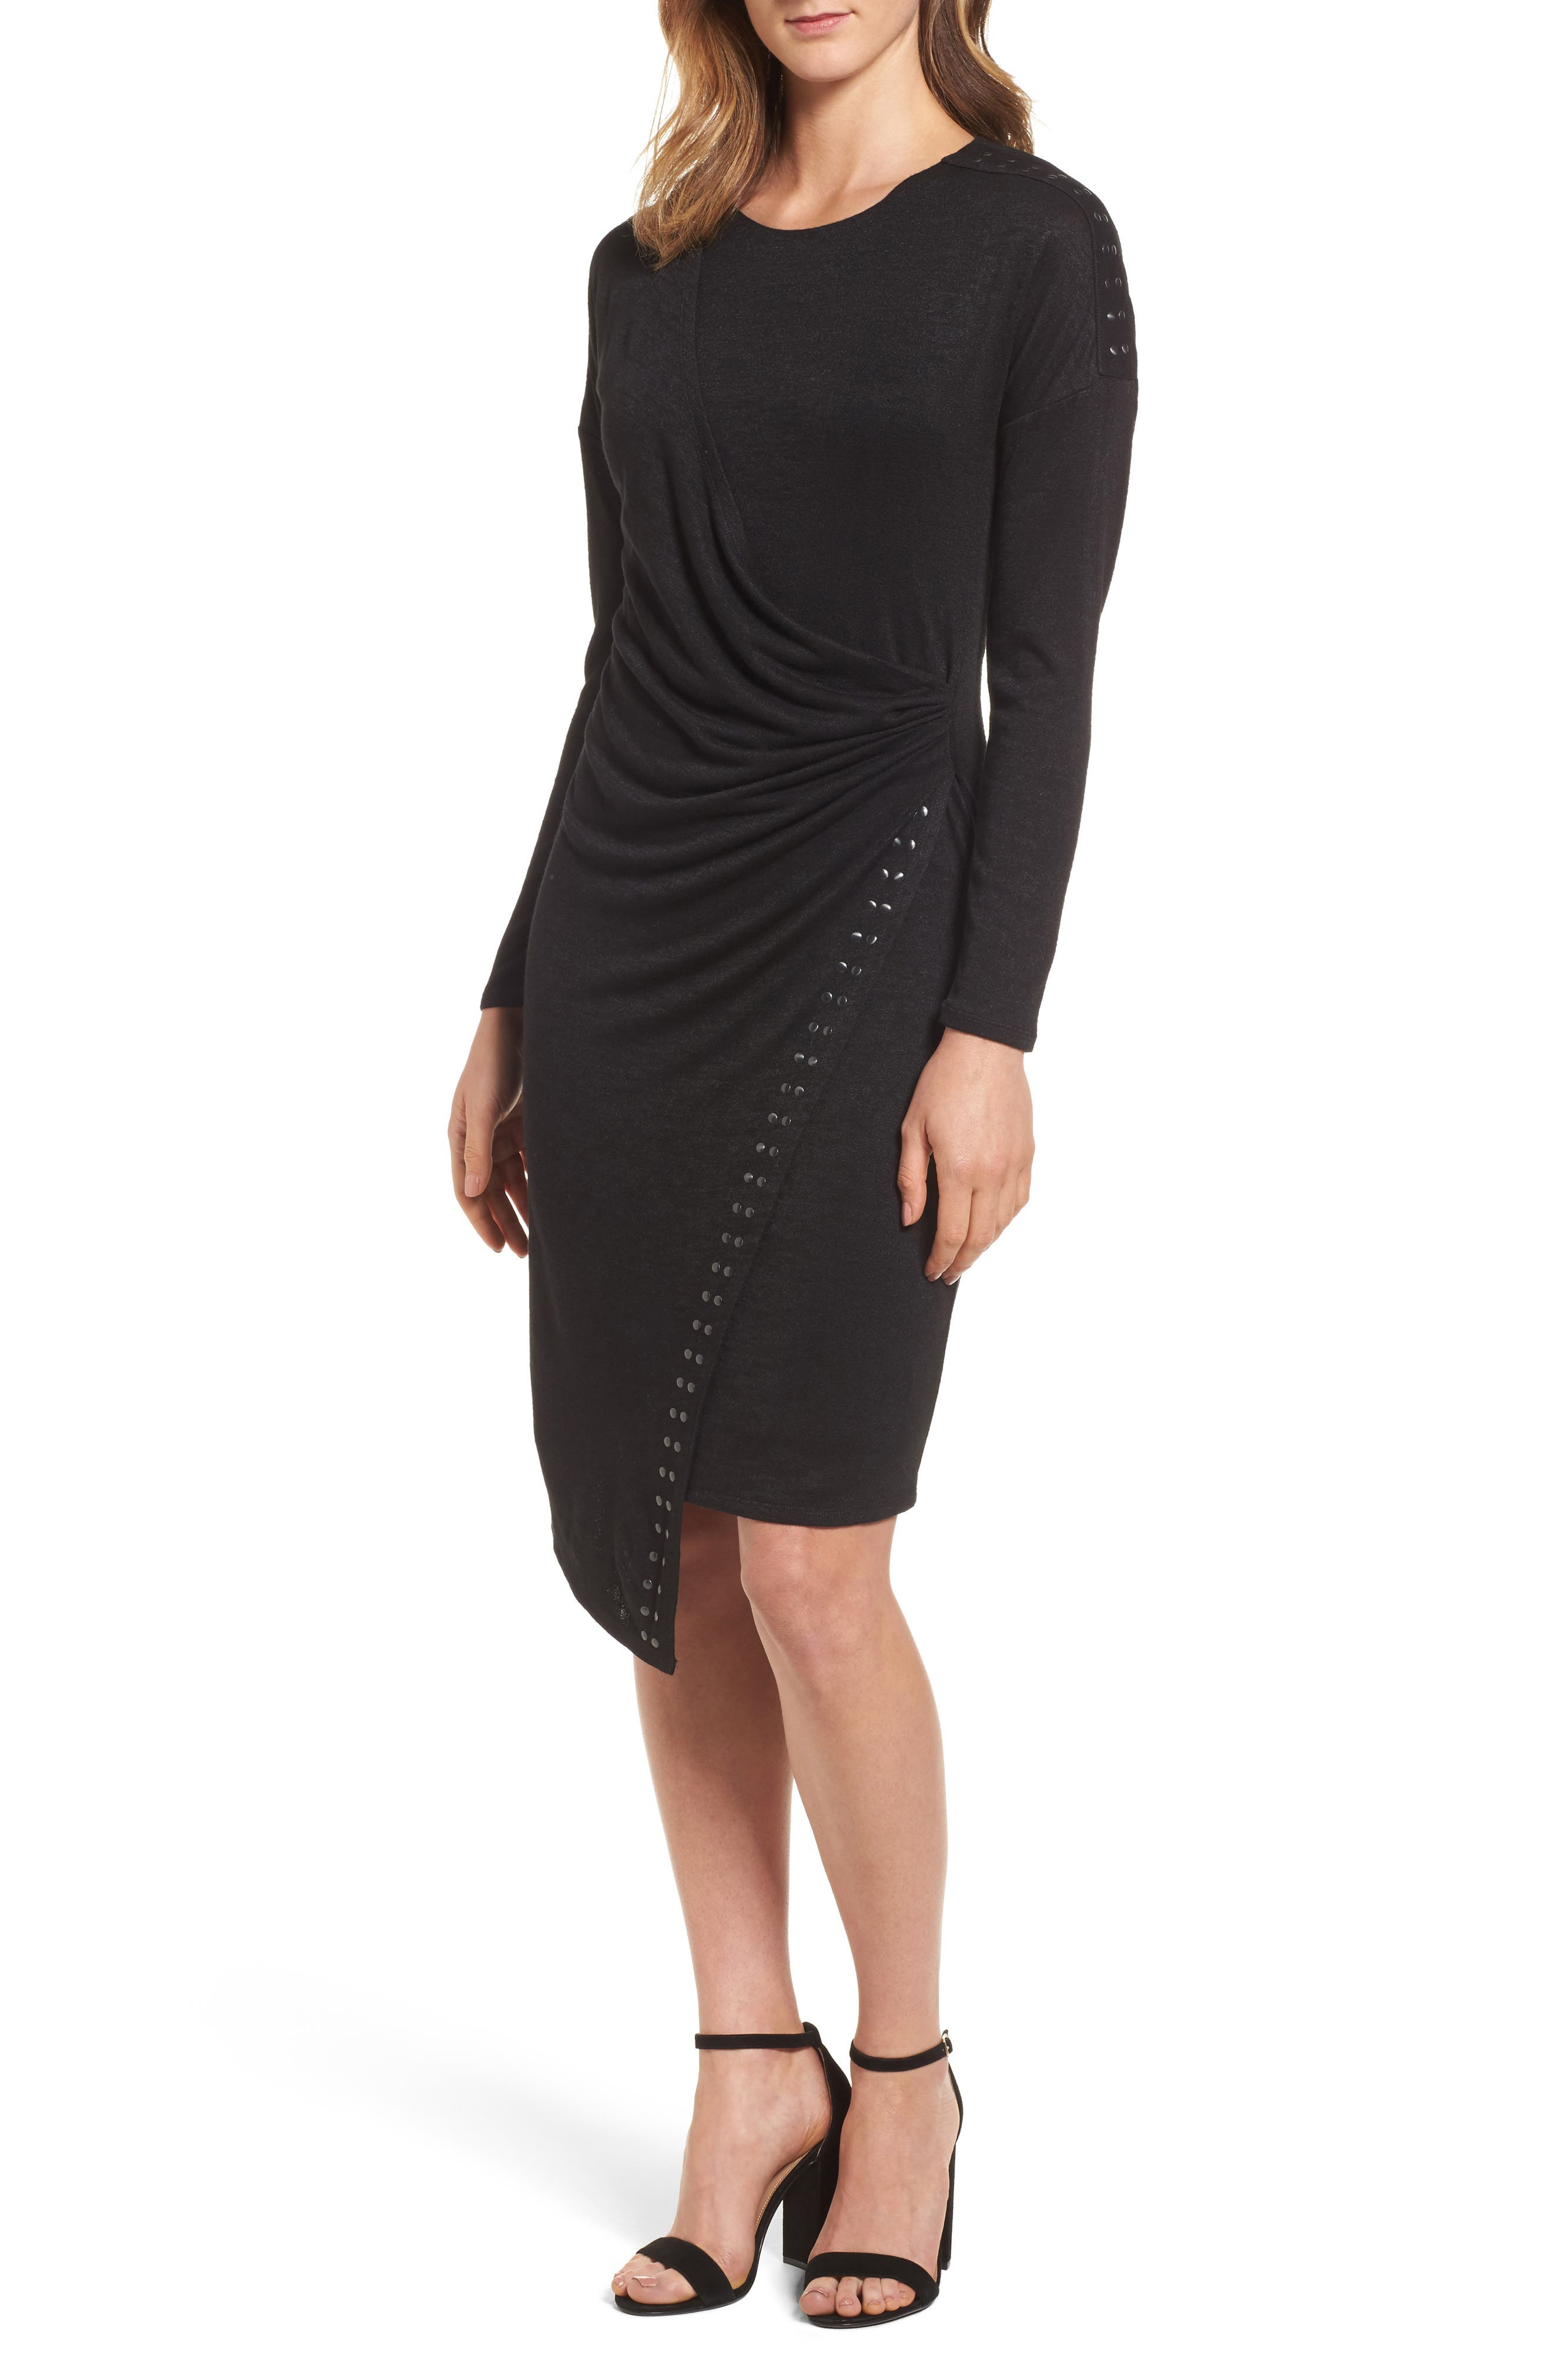 Alternate Image 1 Selected - NIC+ZOE Studded Every Occasion Dress (Regular & Petite)